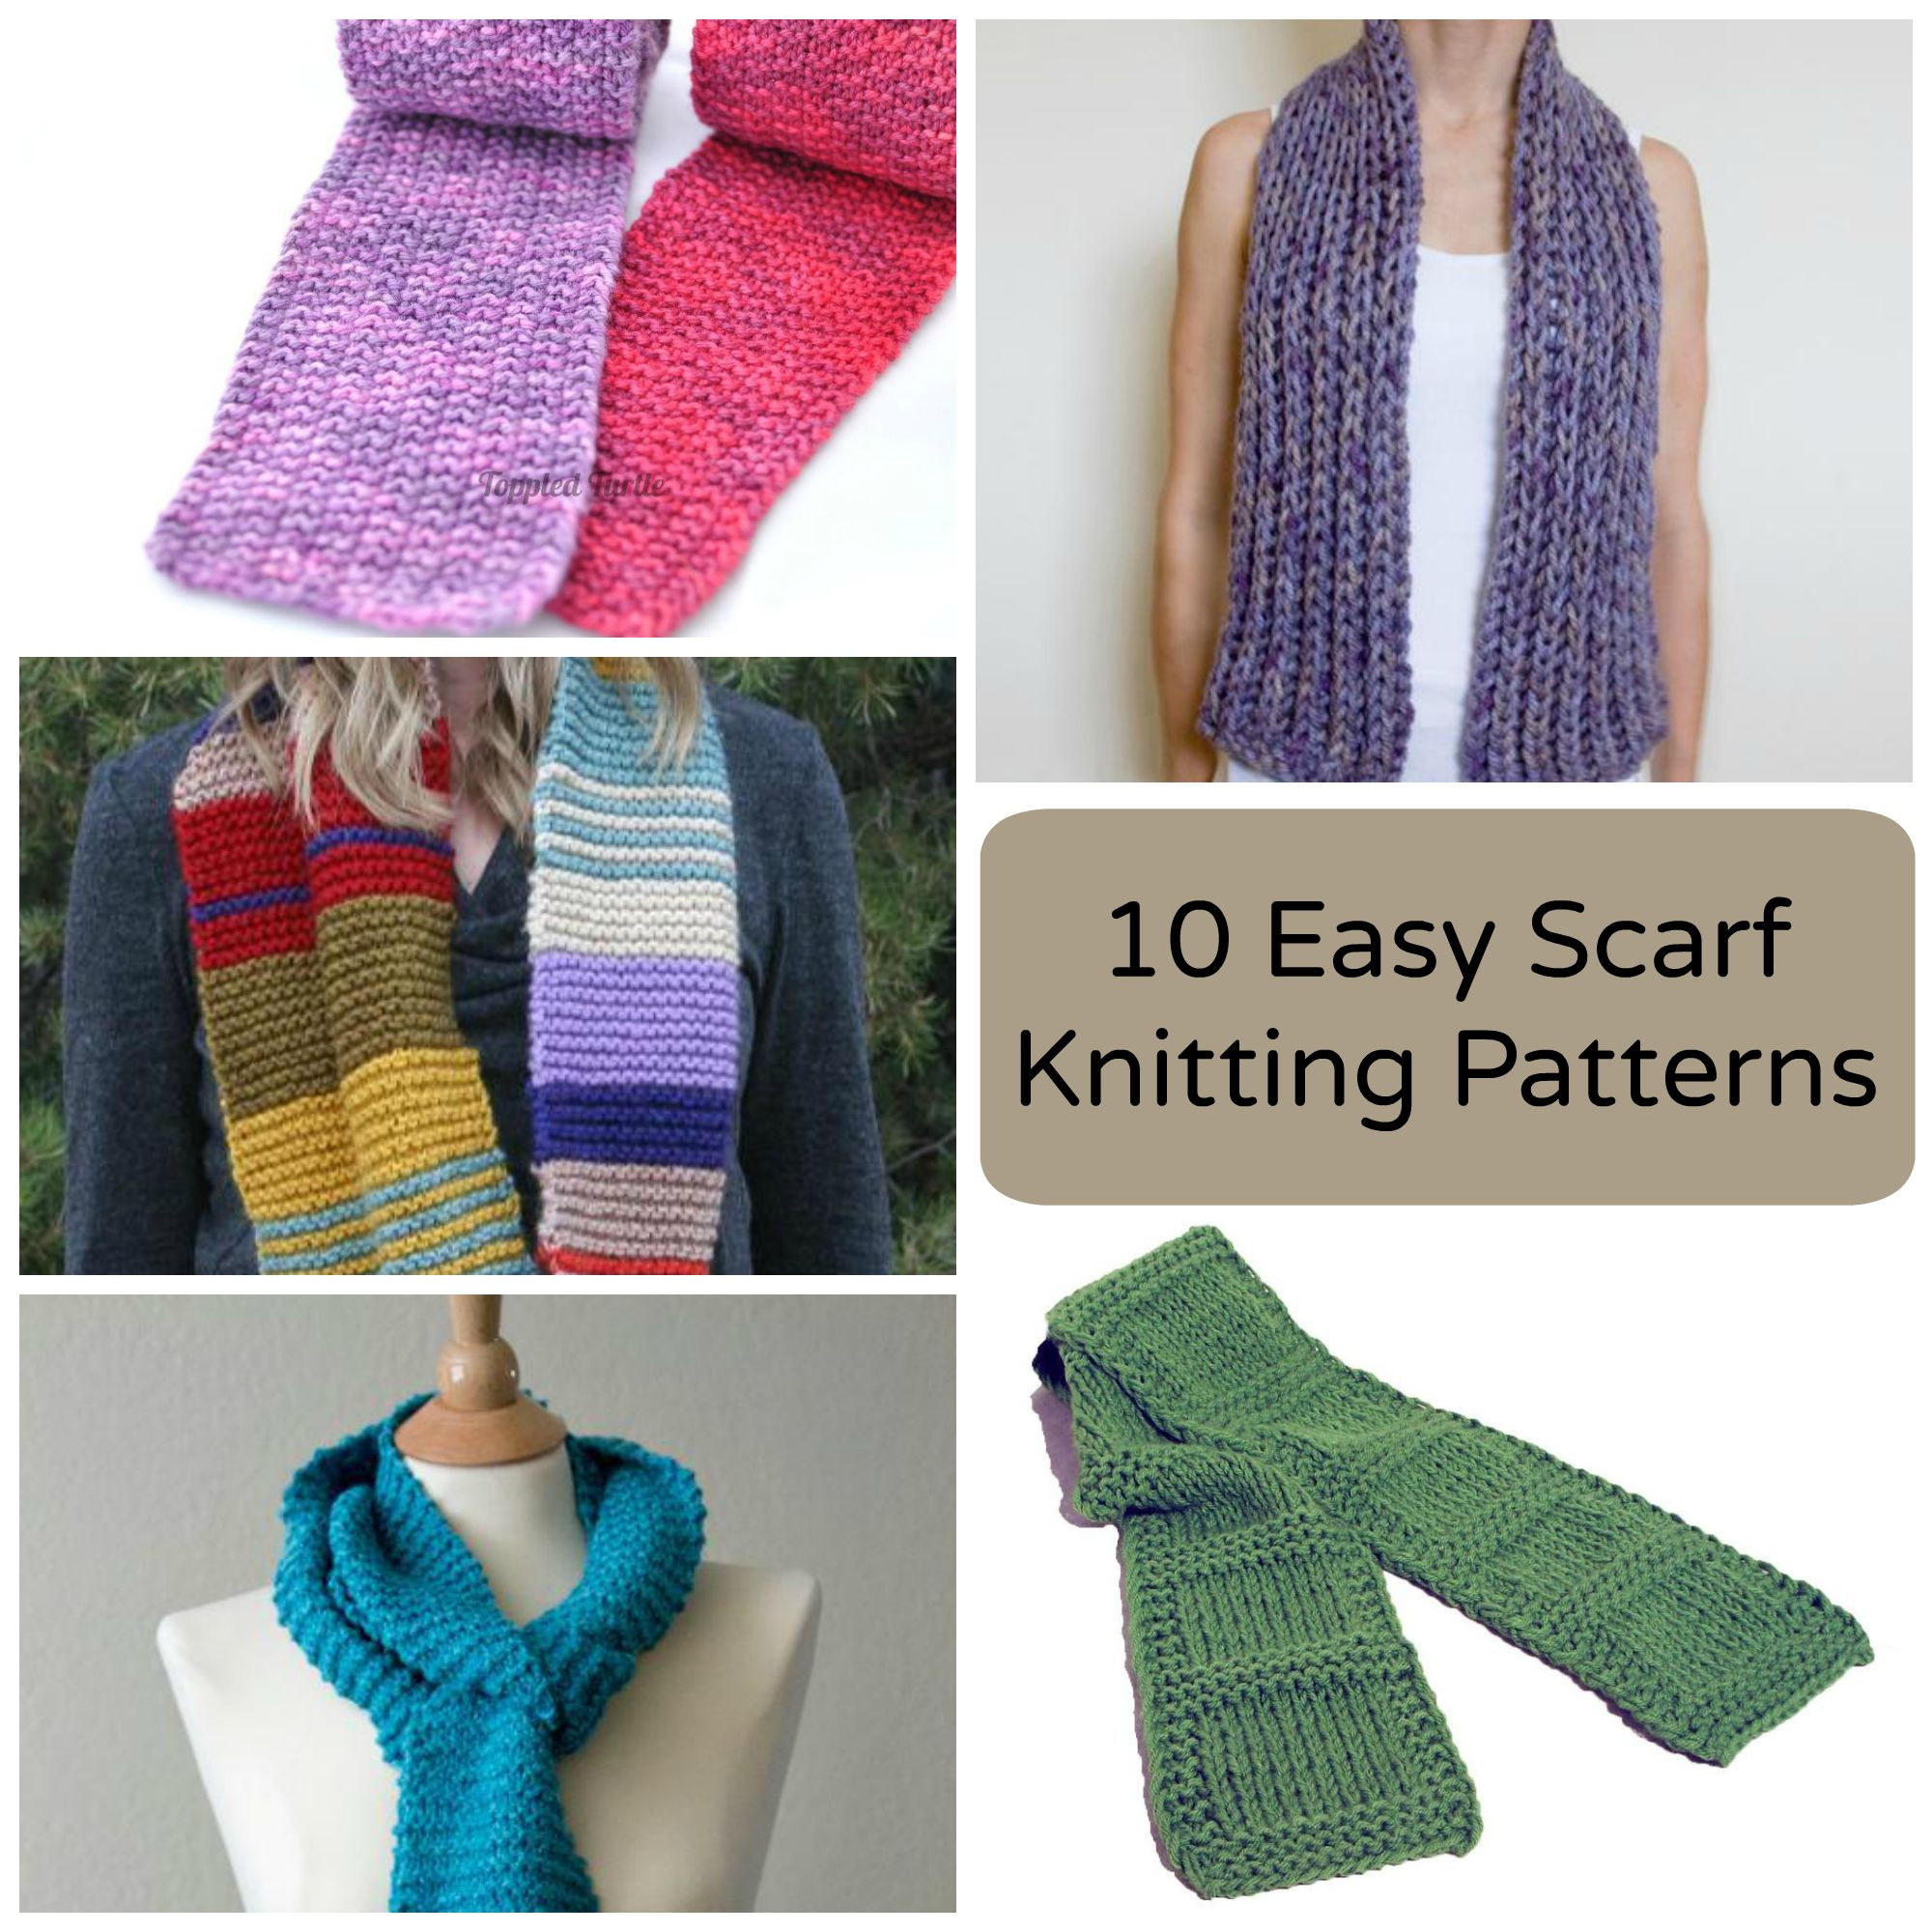 Scarf Knitting Patterns Inspirational 10 Easy Scarf Knitting Patterns for Beginners Of Wonderful 41 Pictures Scarf Knitting Patterns